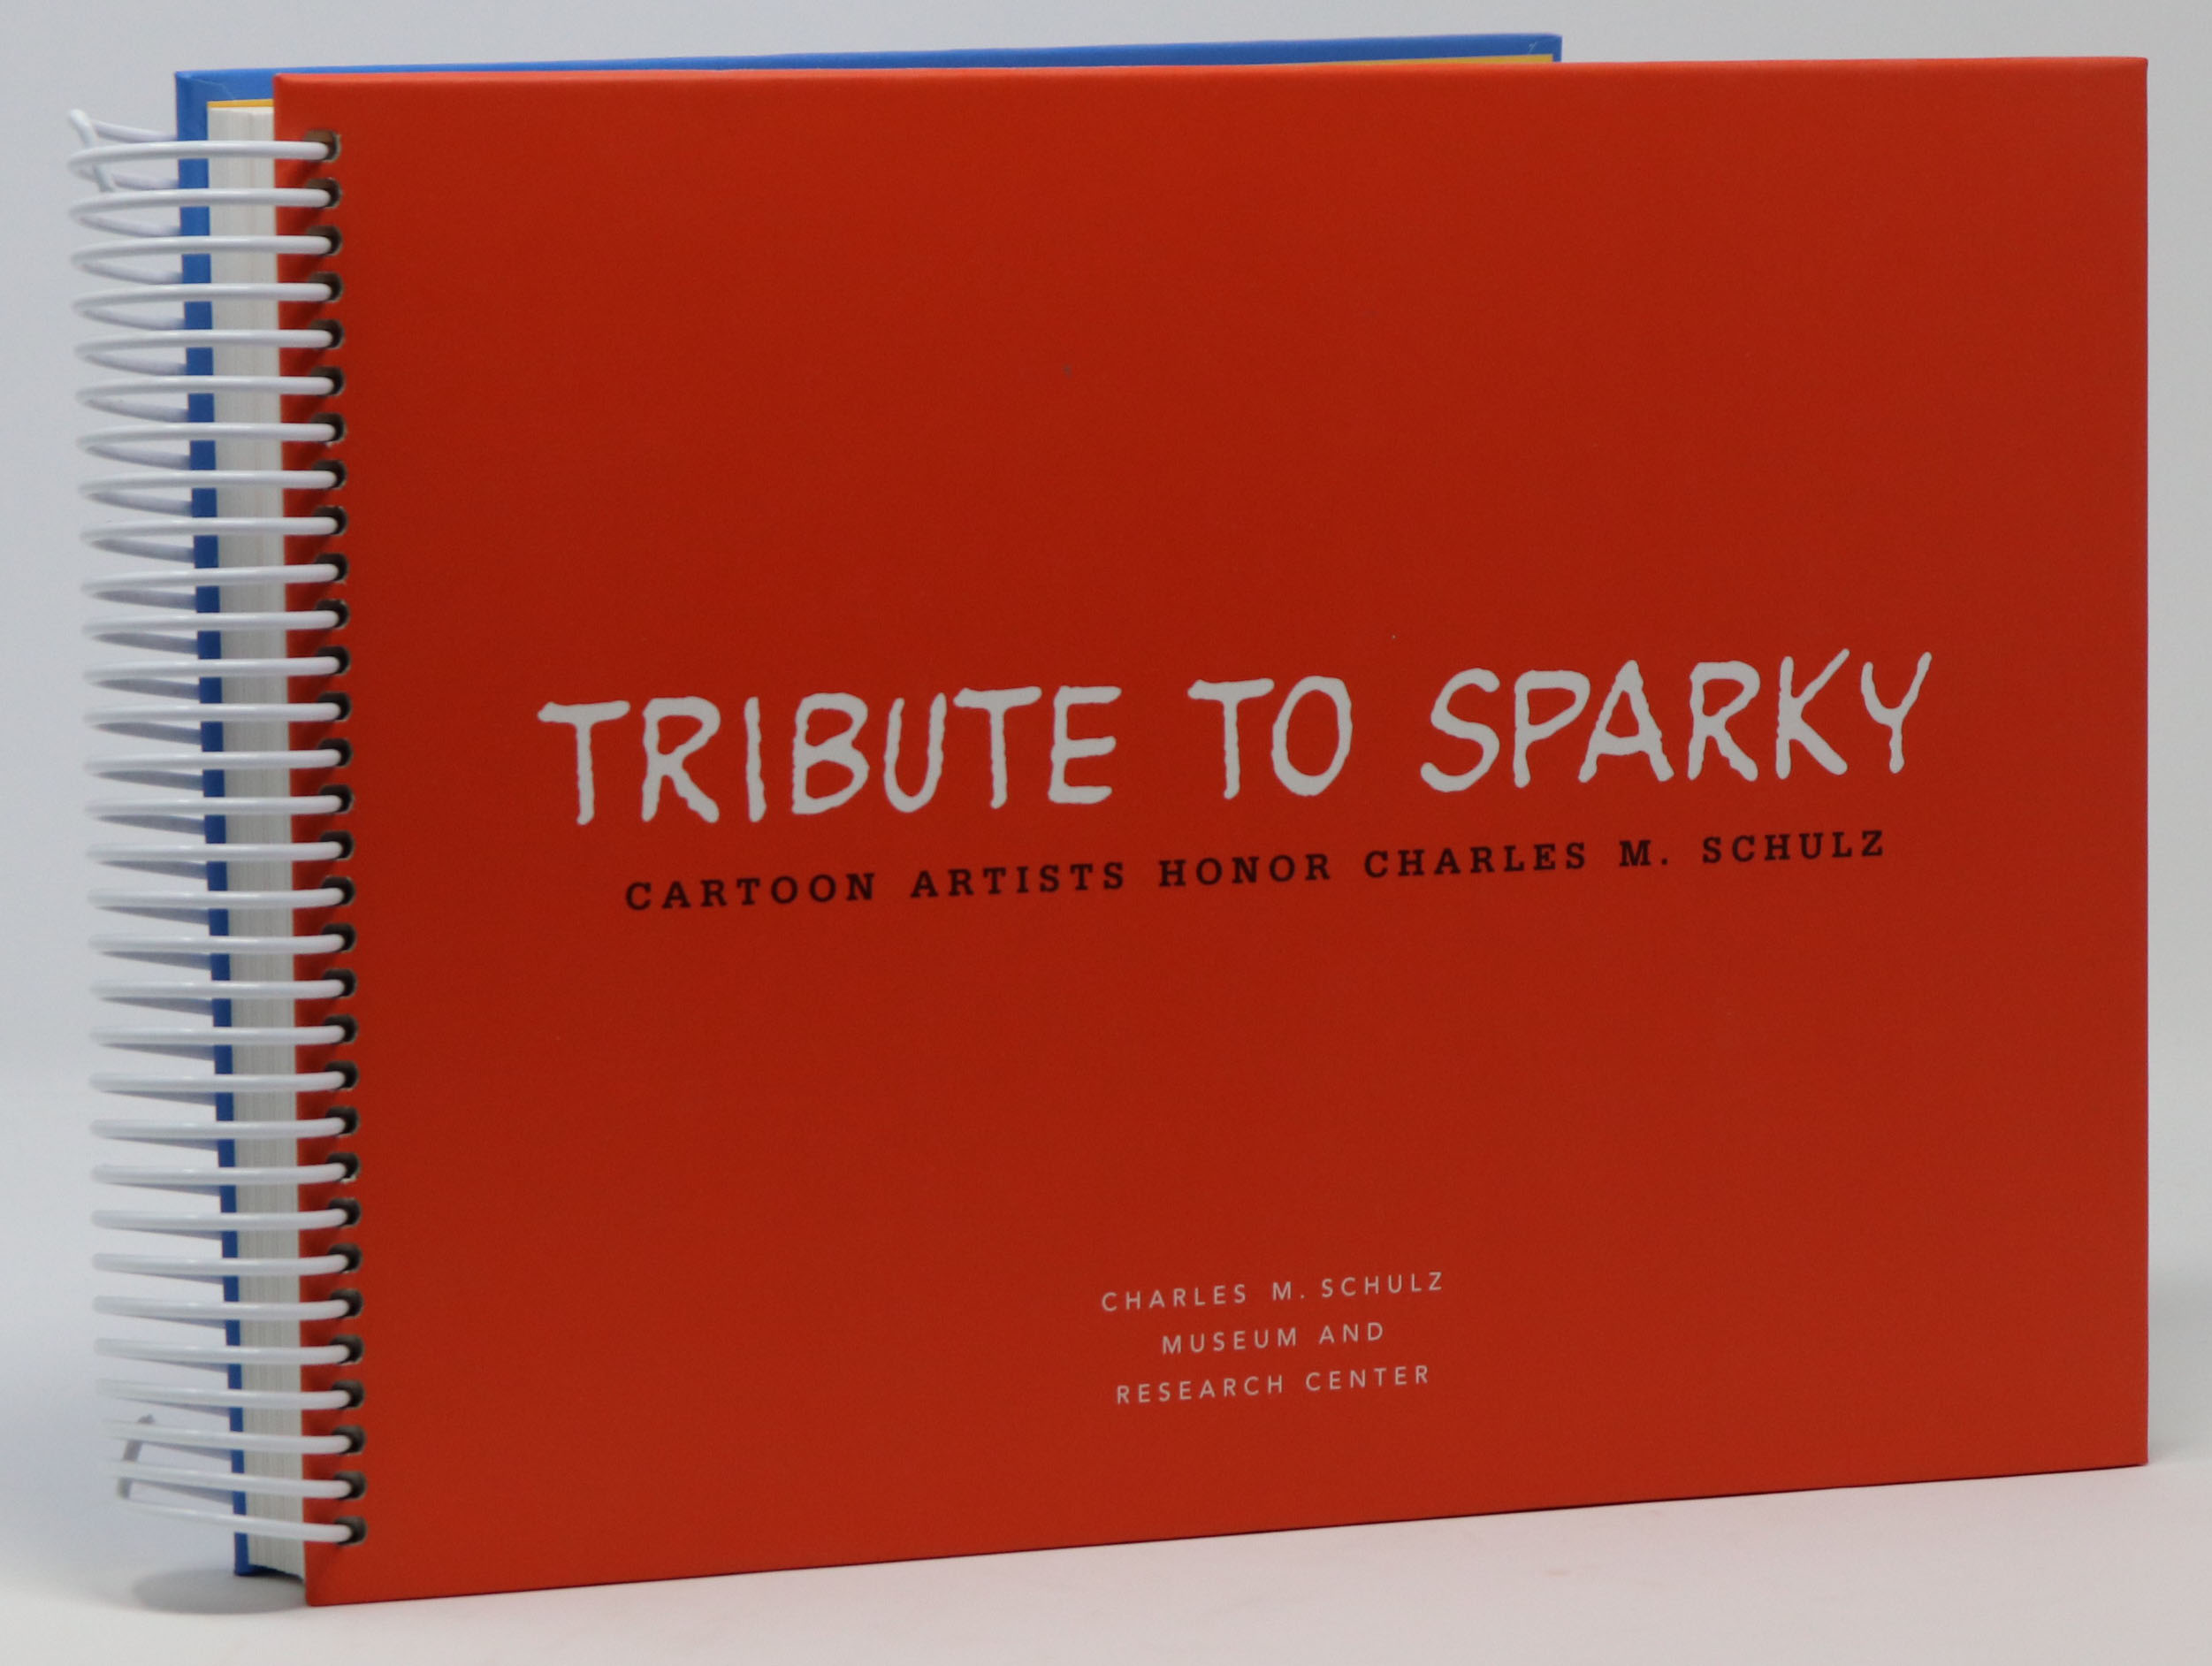 Image for Tribute to Sparky: Cartoon Artists Honor Charles M. Schulz